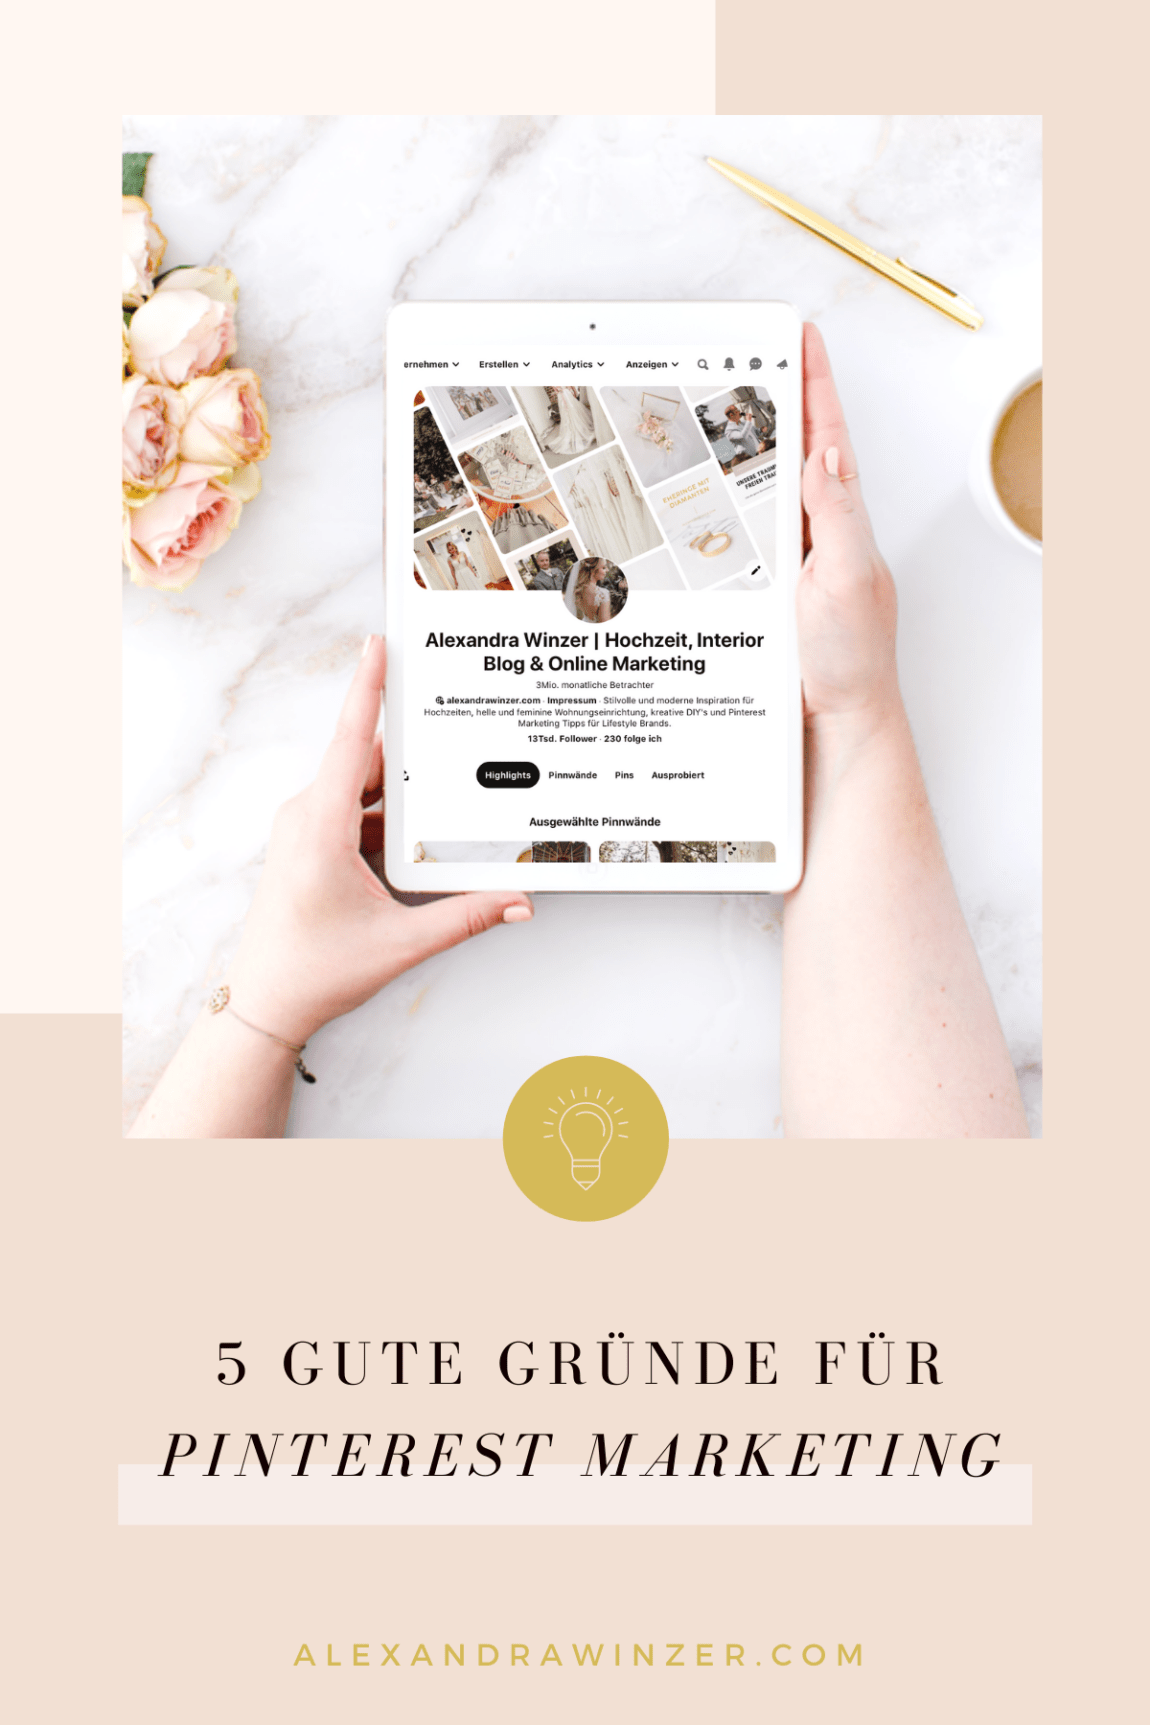 Pinterest Marketing 2020 Gute Gründe